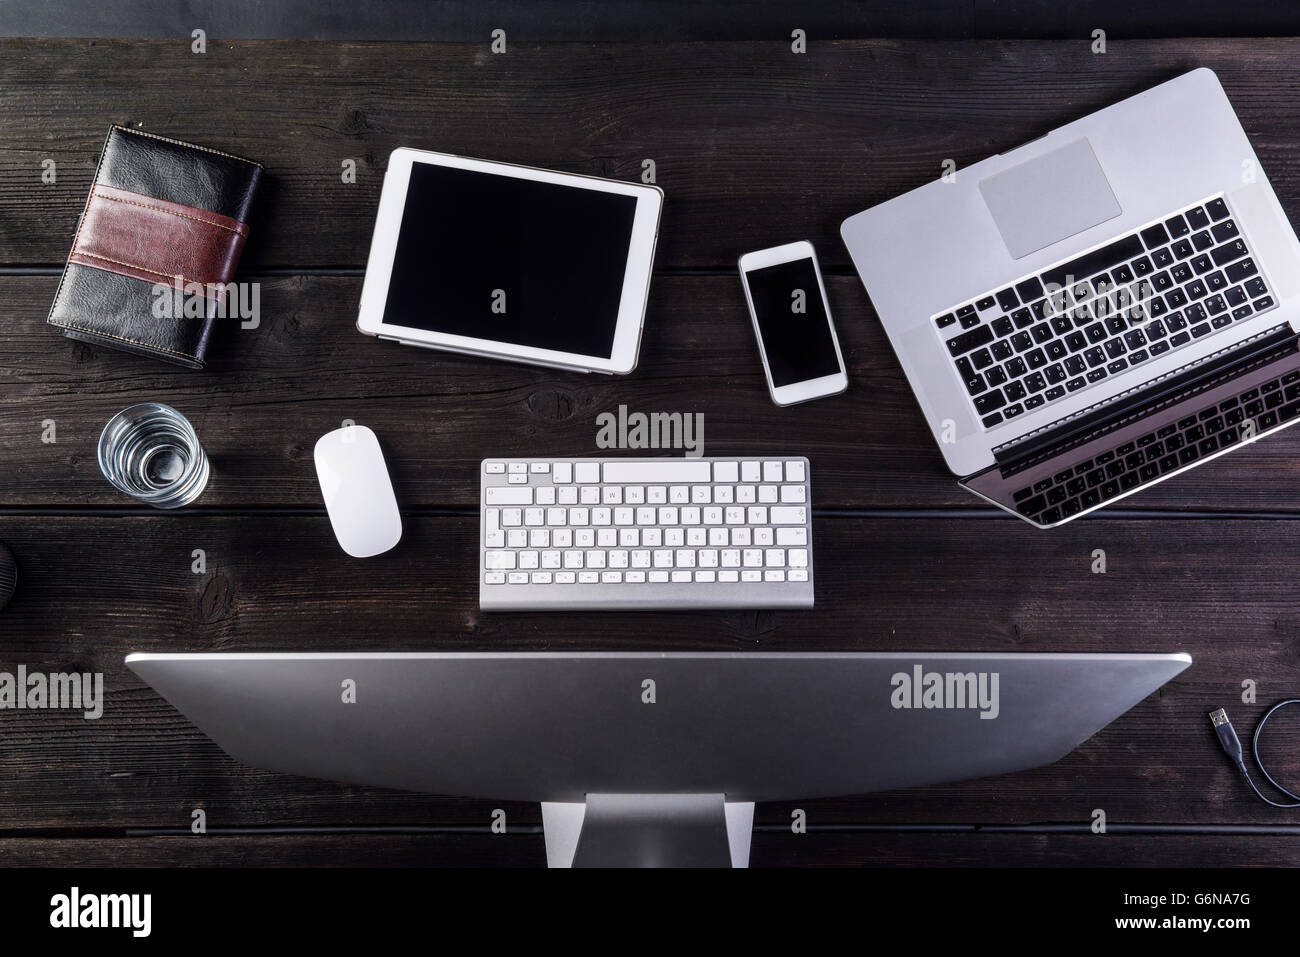 Desk with computer and various digital gadgets, overhead view - Stock Image